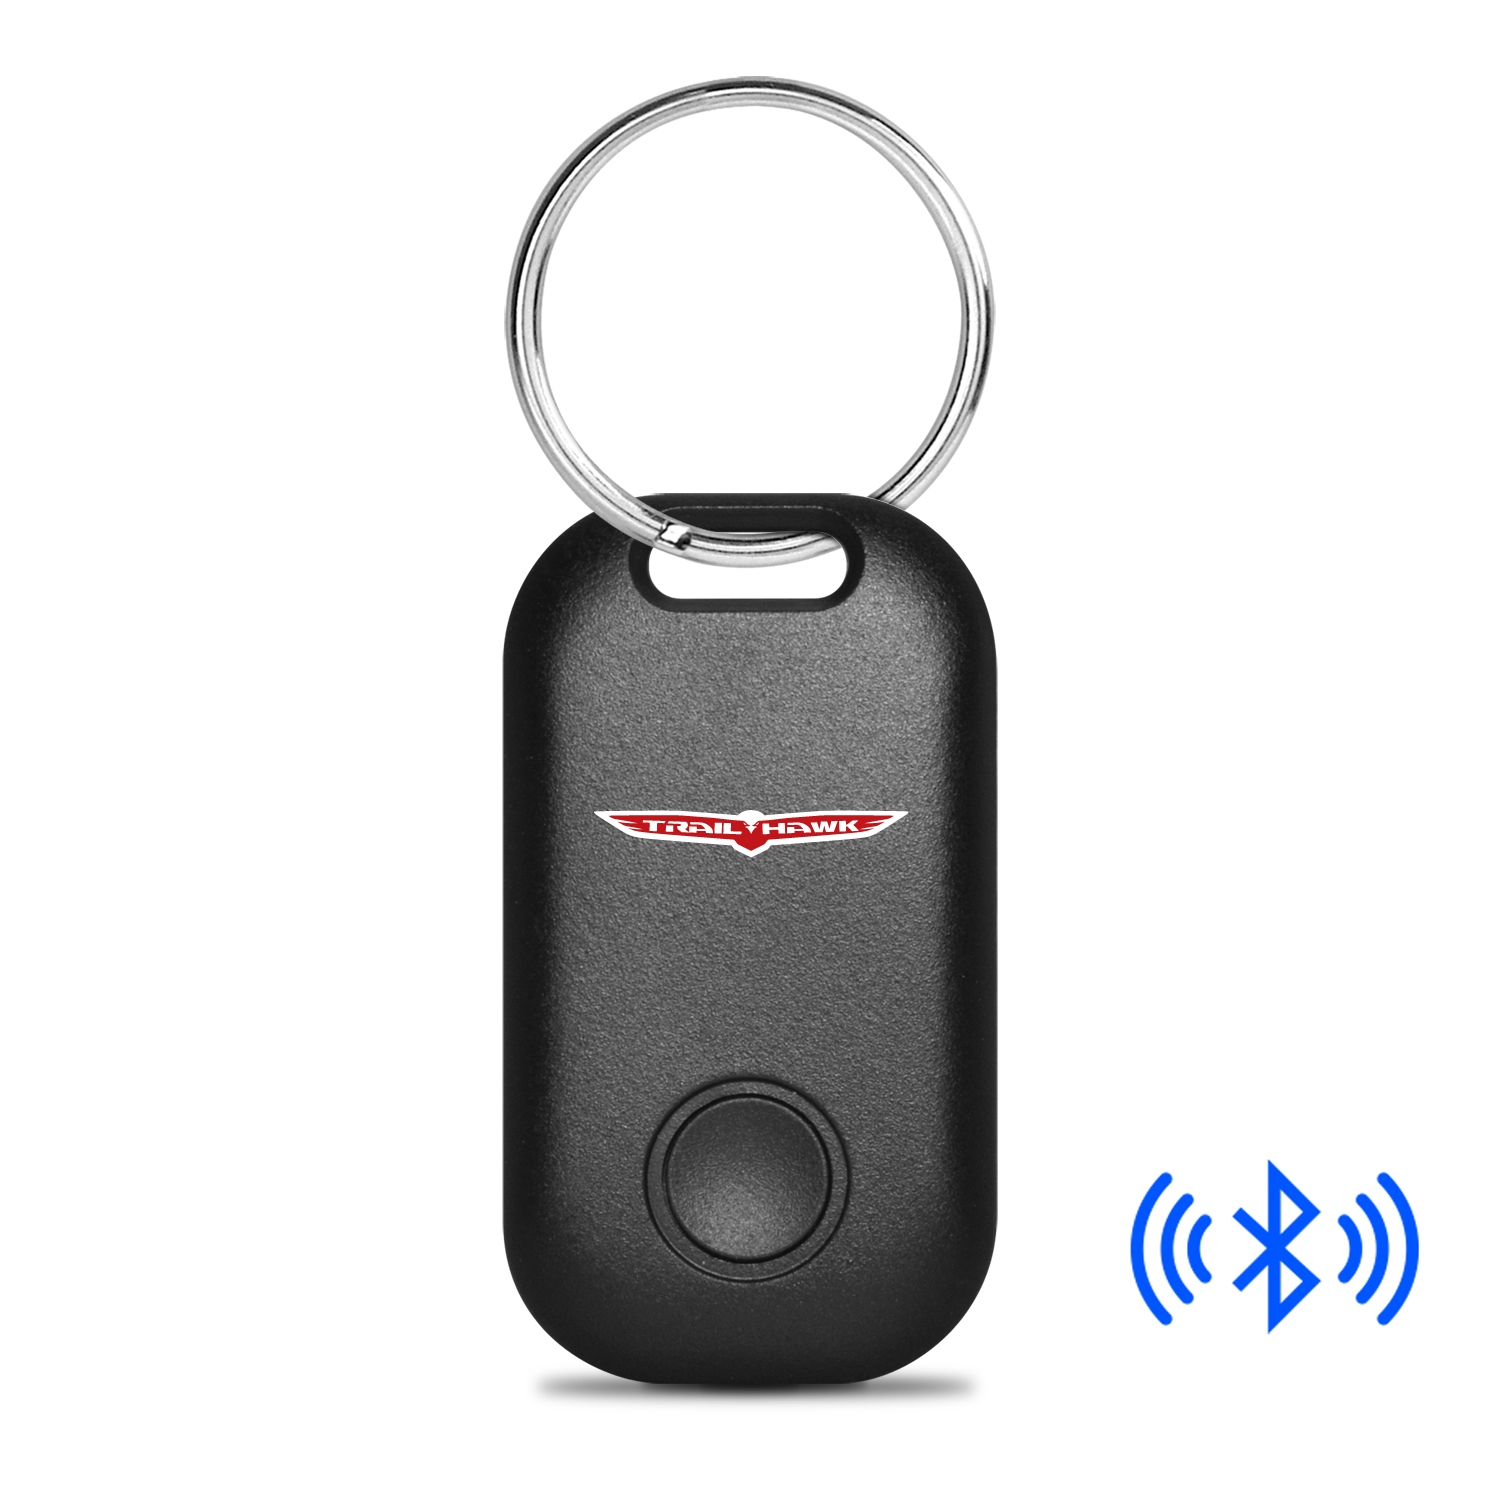 Jeep Trailhawk Bluetooth Smart Key Finder Black Key Chain